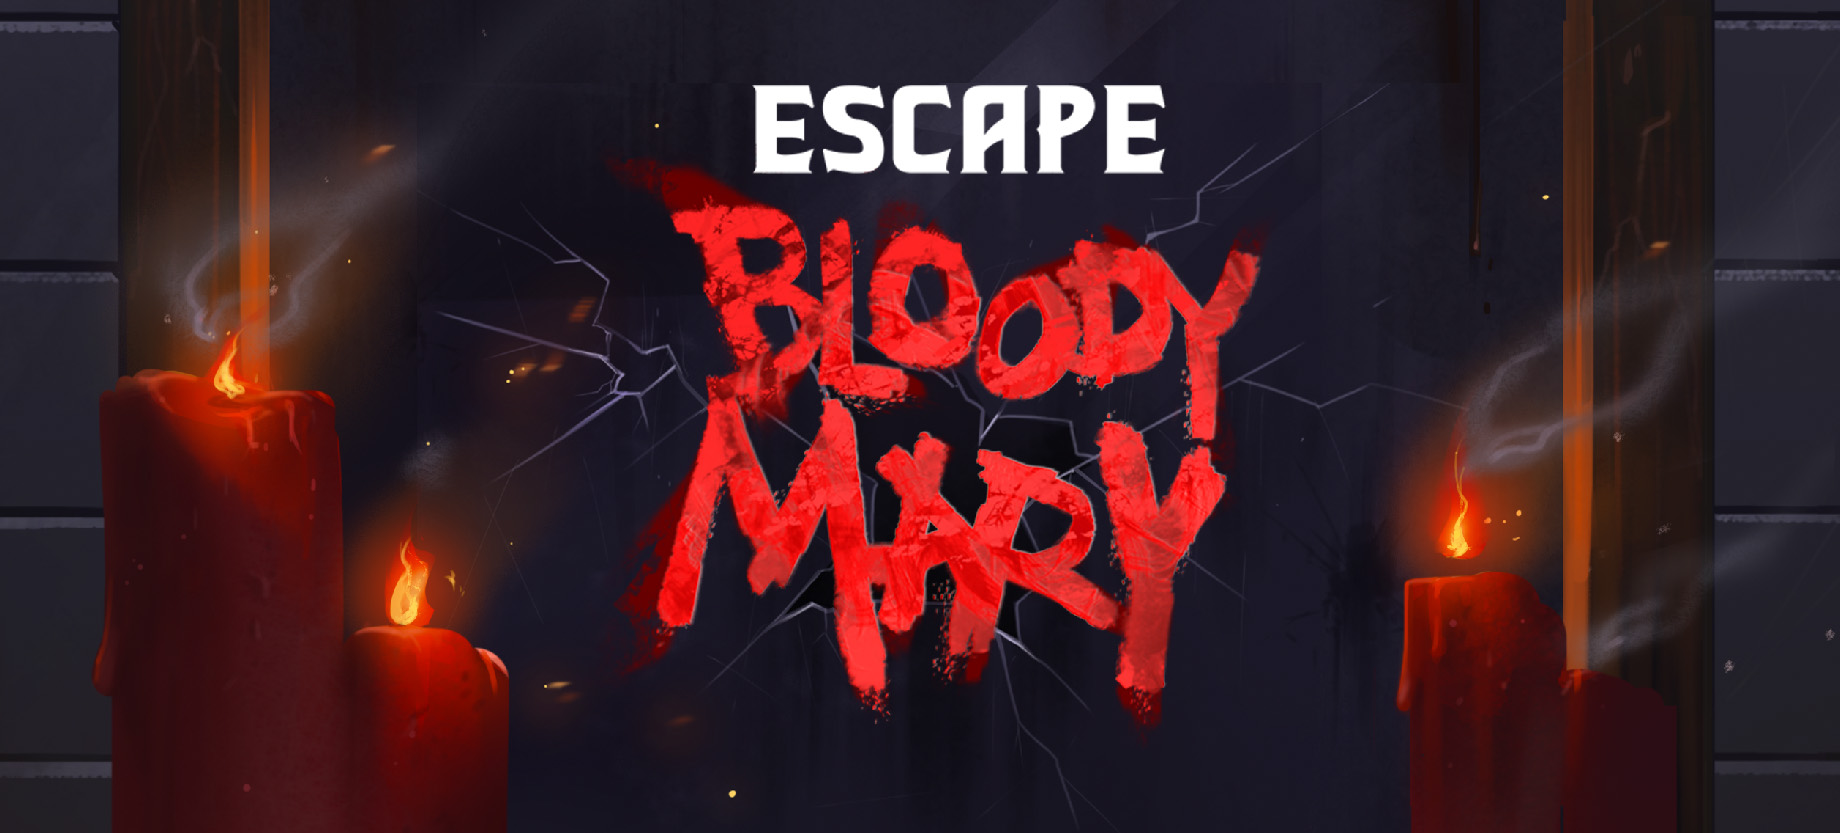 A banner image showing candles and the logo for the game Escape Bloody Mary